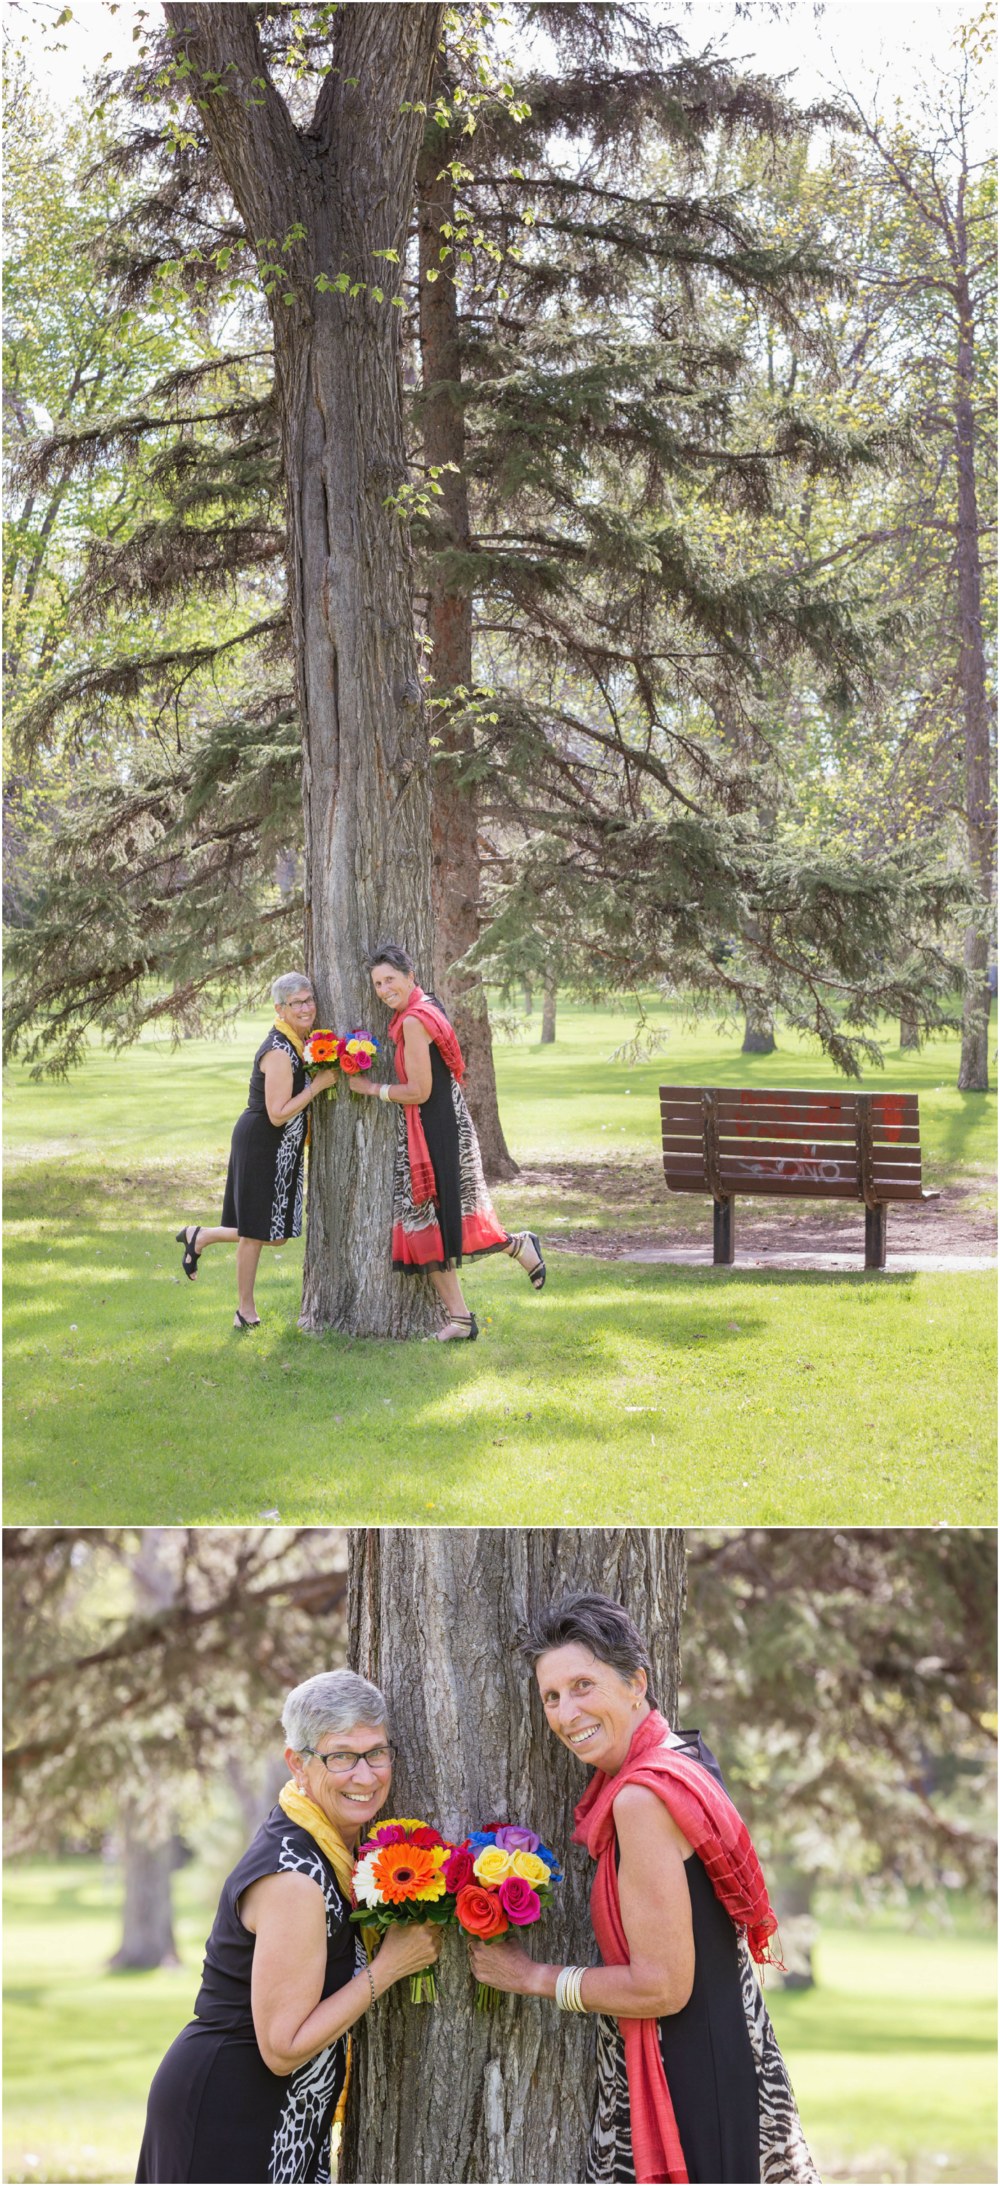 medicine_hat_backyard_wedding_7.png